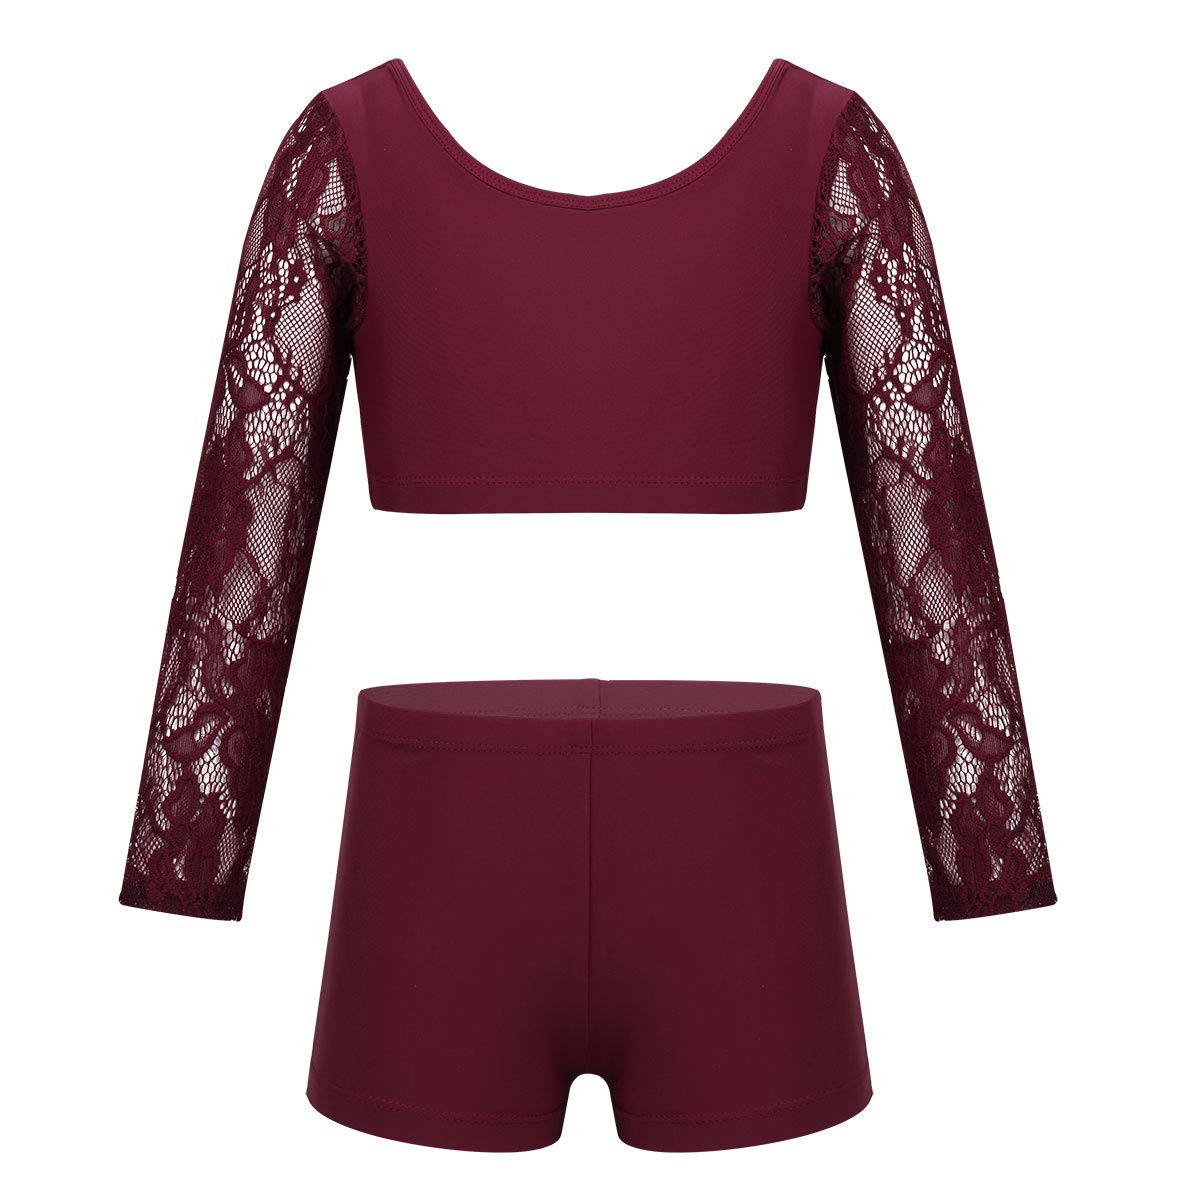 moily Big Girls Athletic Dance 2 Pieces Set Lace Long Sleeve Crop Top with Booty Shorts Ballet//Gymnastics//Sports